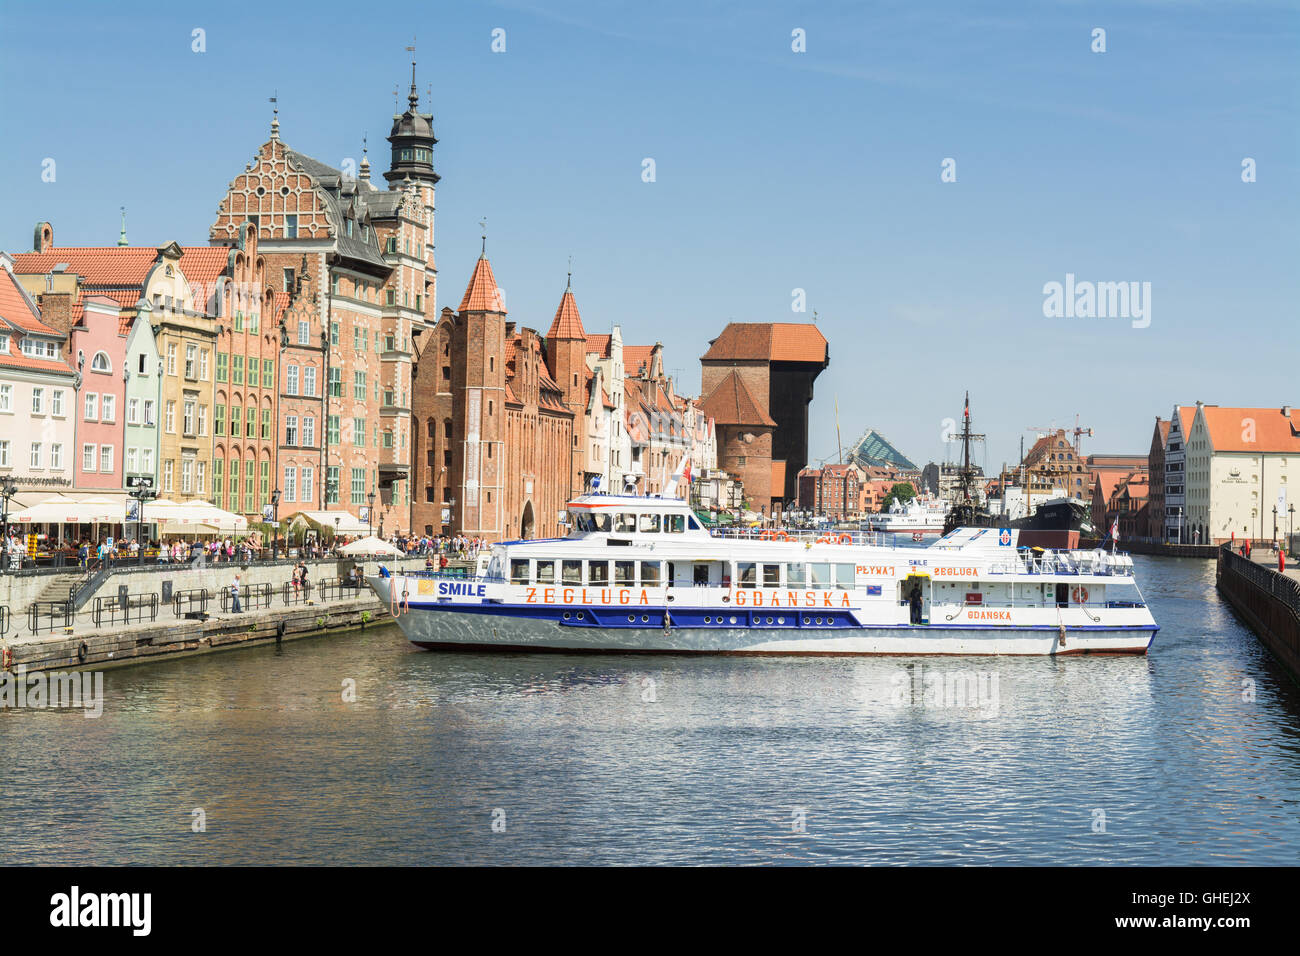 Gdansk Old Town tourist cruise boats on the Motlawa River, Gdansk, Poland - Stock Image